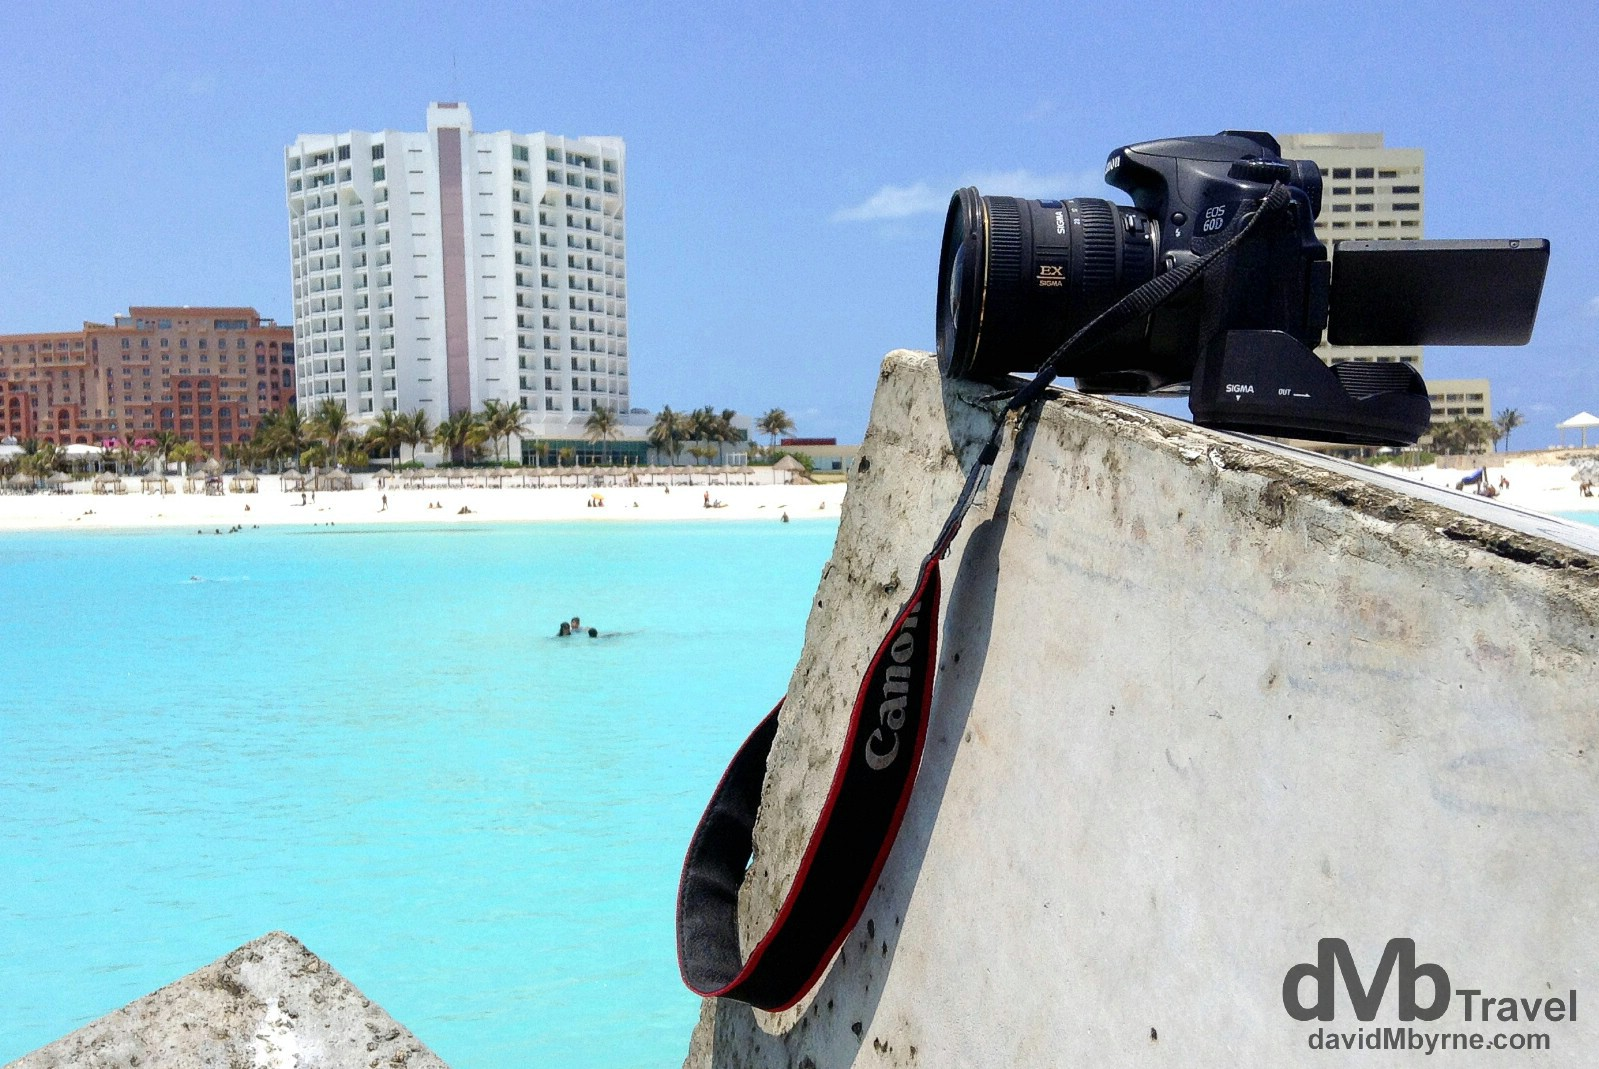 Capturing the action at Punta Cancun, Cancun, Yucatan, Mexico. May 5th 2013.